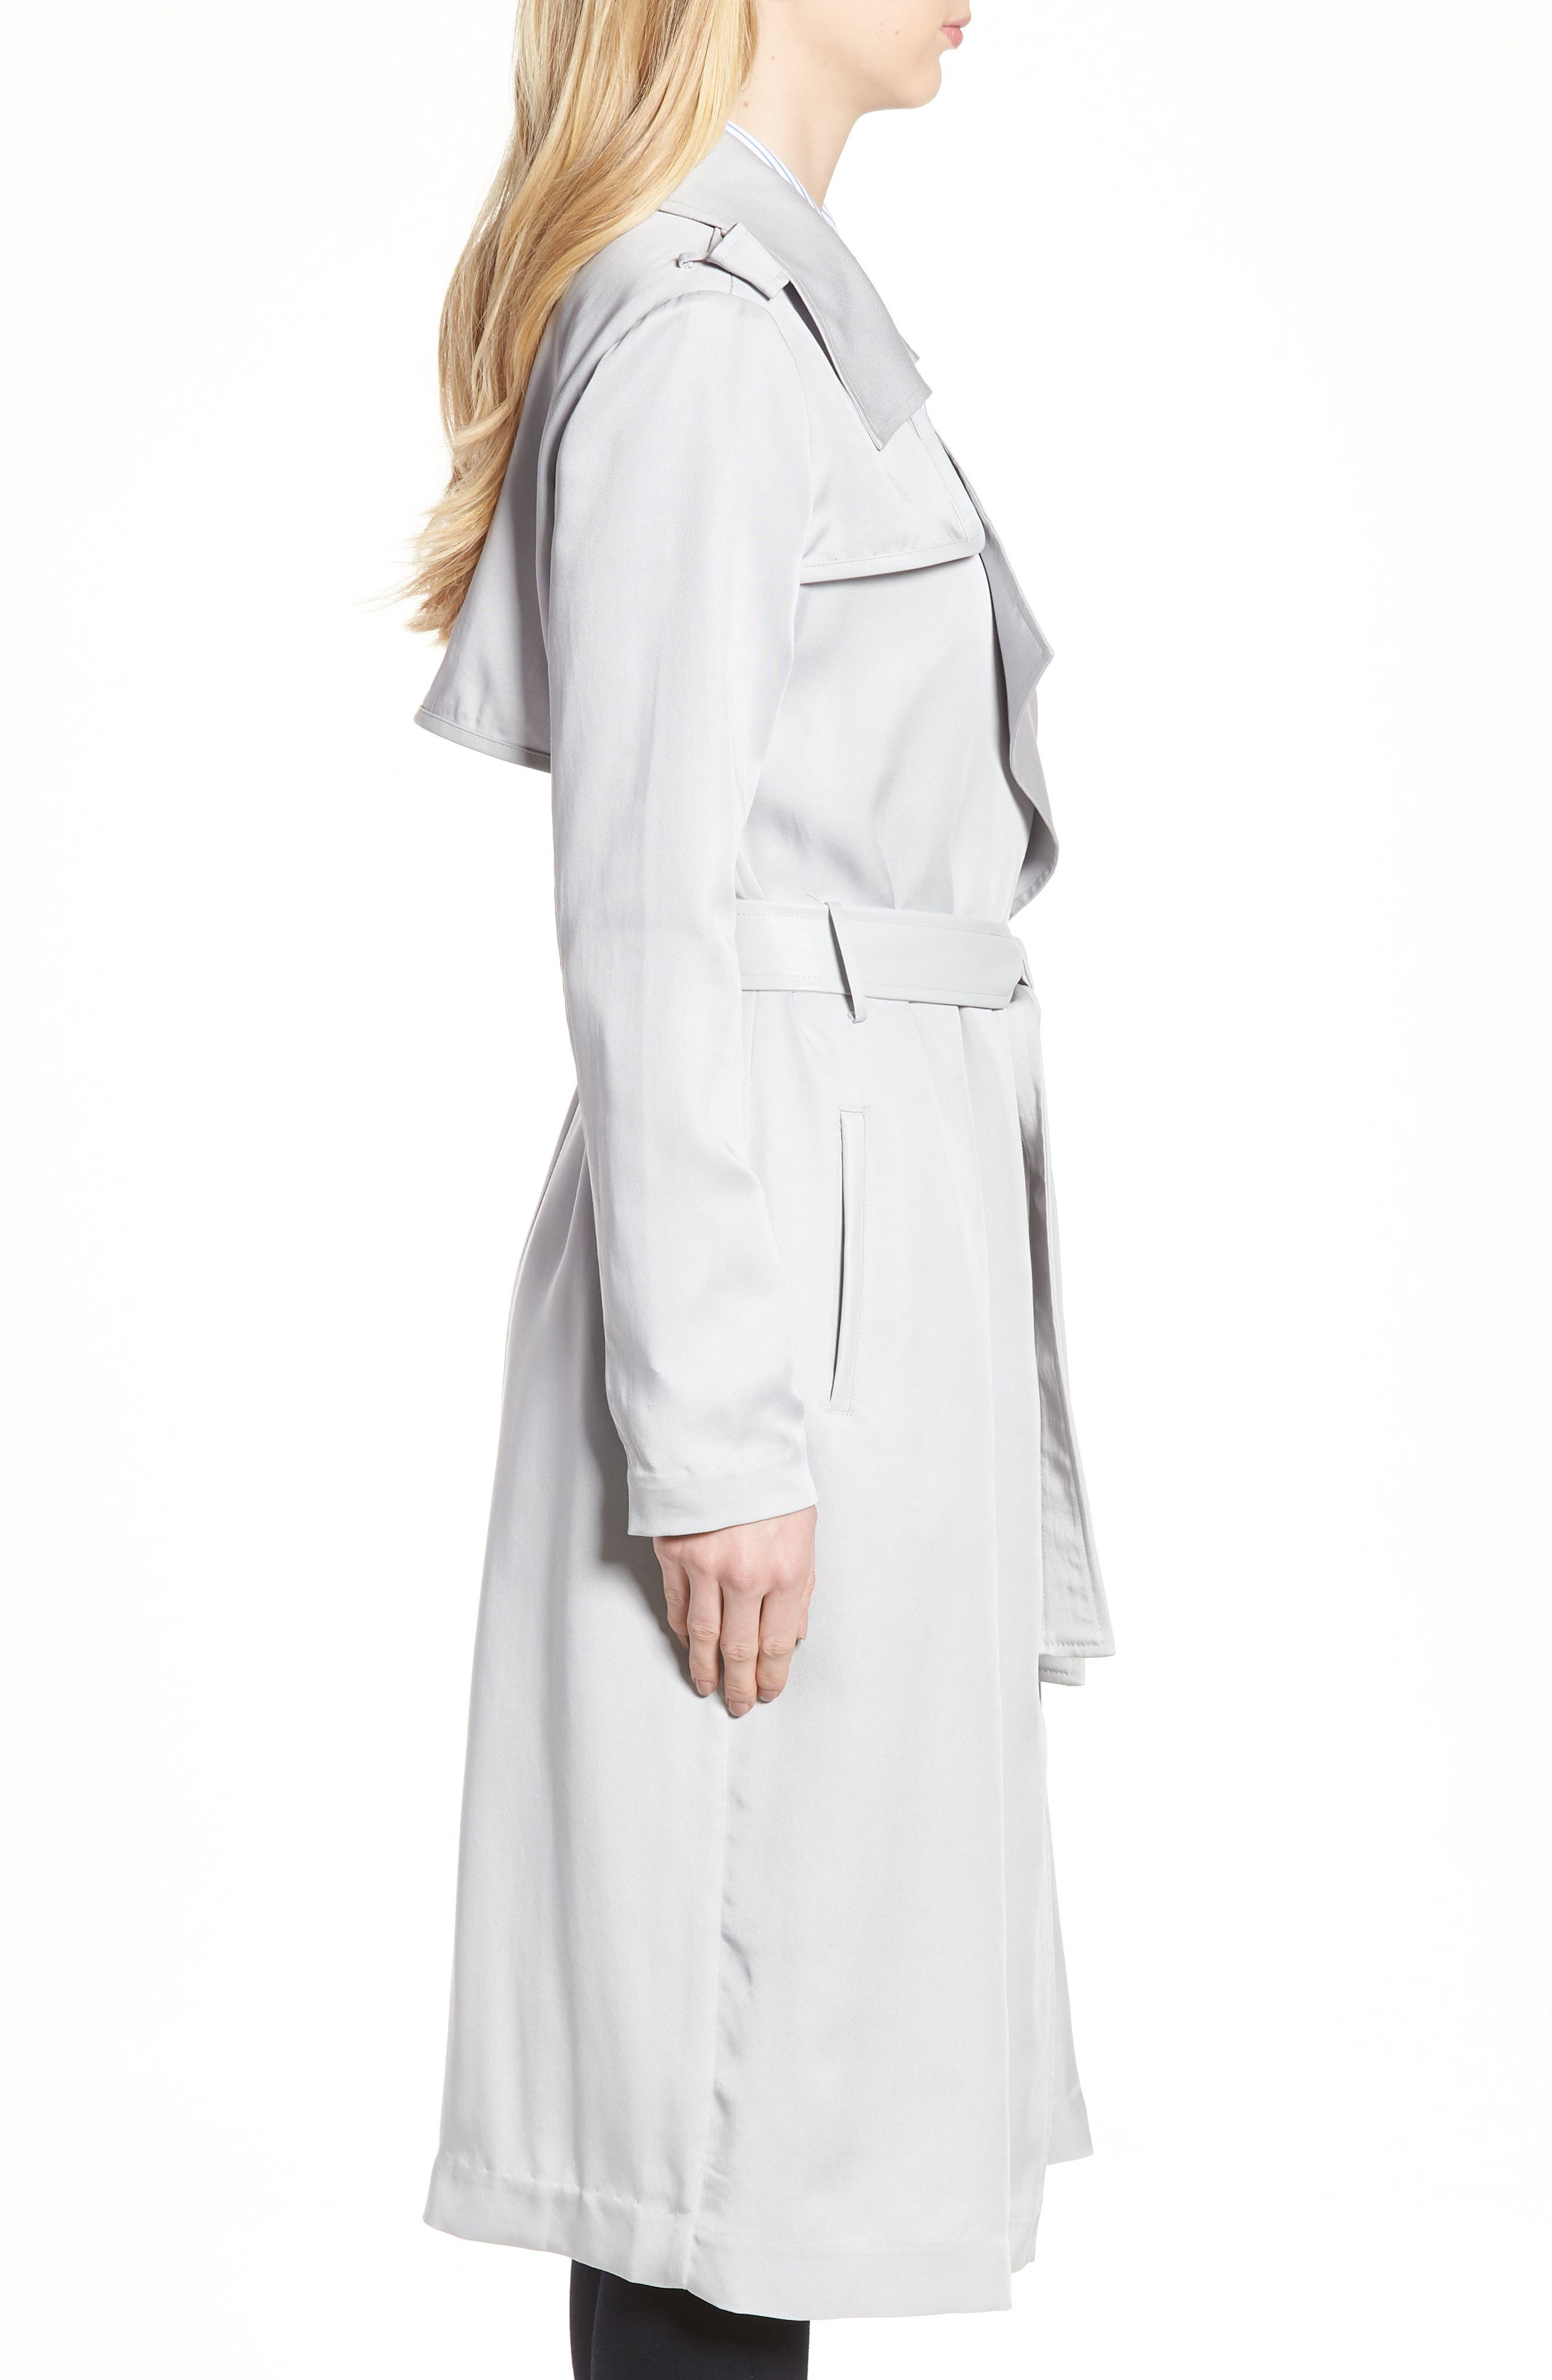 Badgley Mischka Faux Leather Trim Long Trench Coat,                             Alternate thumbnail 3, color,                             020